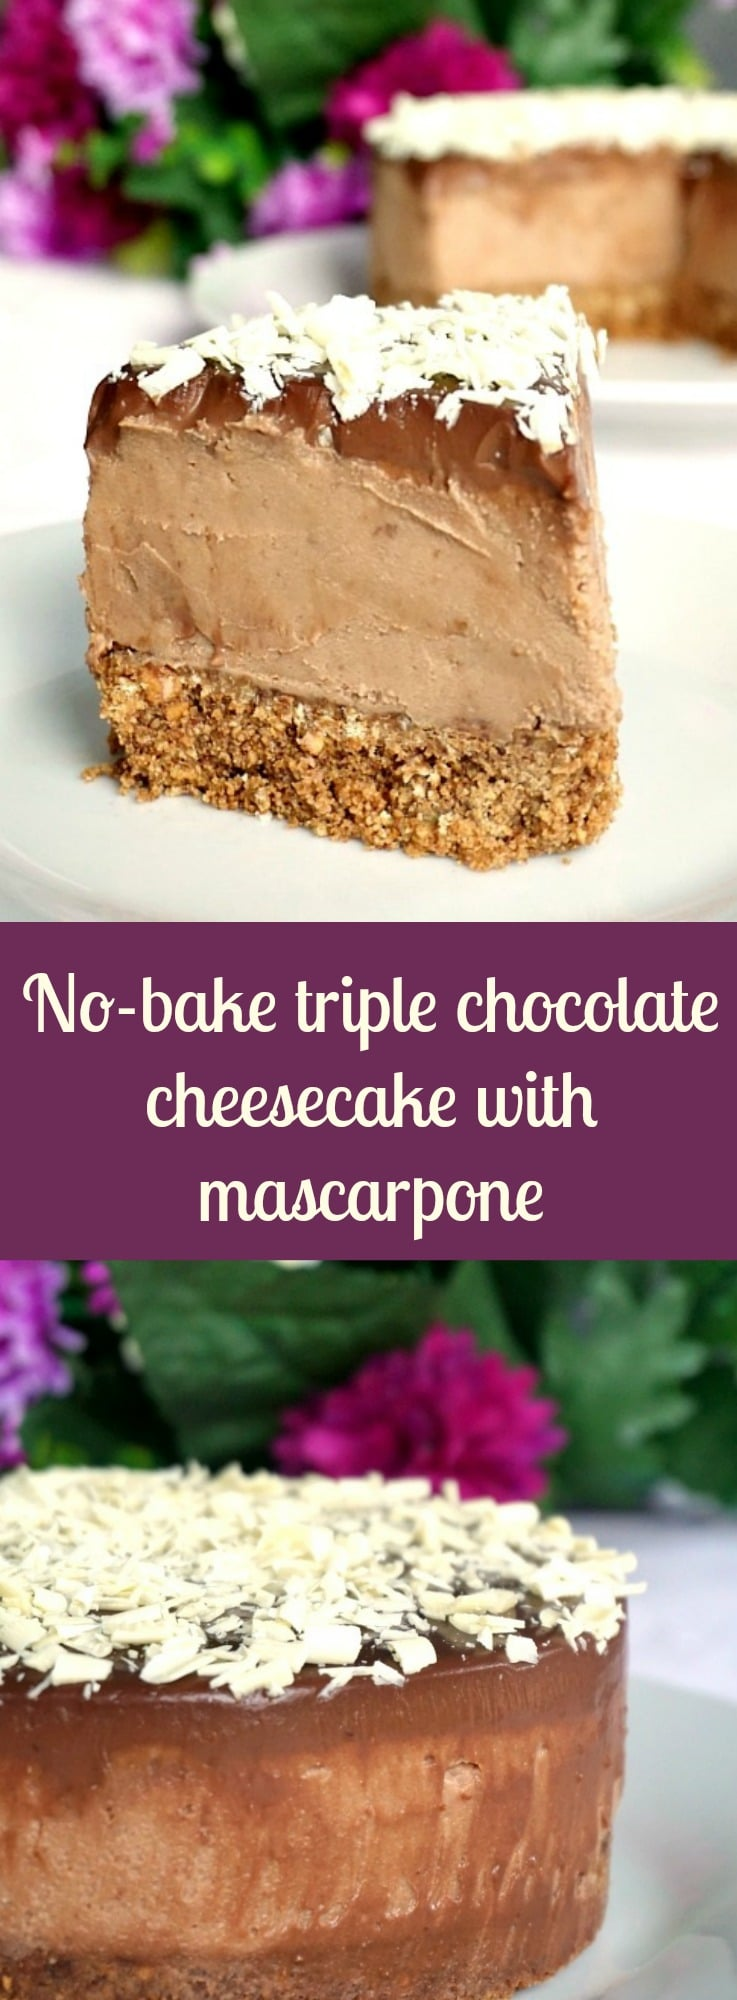 No-bake triple chocolate cheesecake recipe with mascarpone, any chocoholic's dream come true. Rich, silky, chocolaty, sheer pleasure.